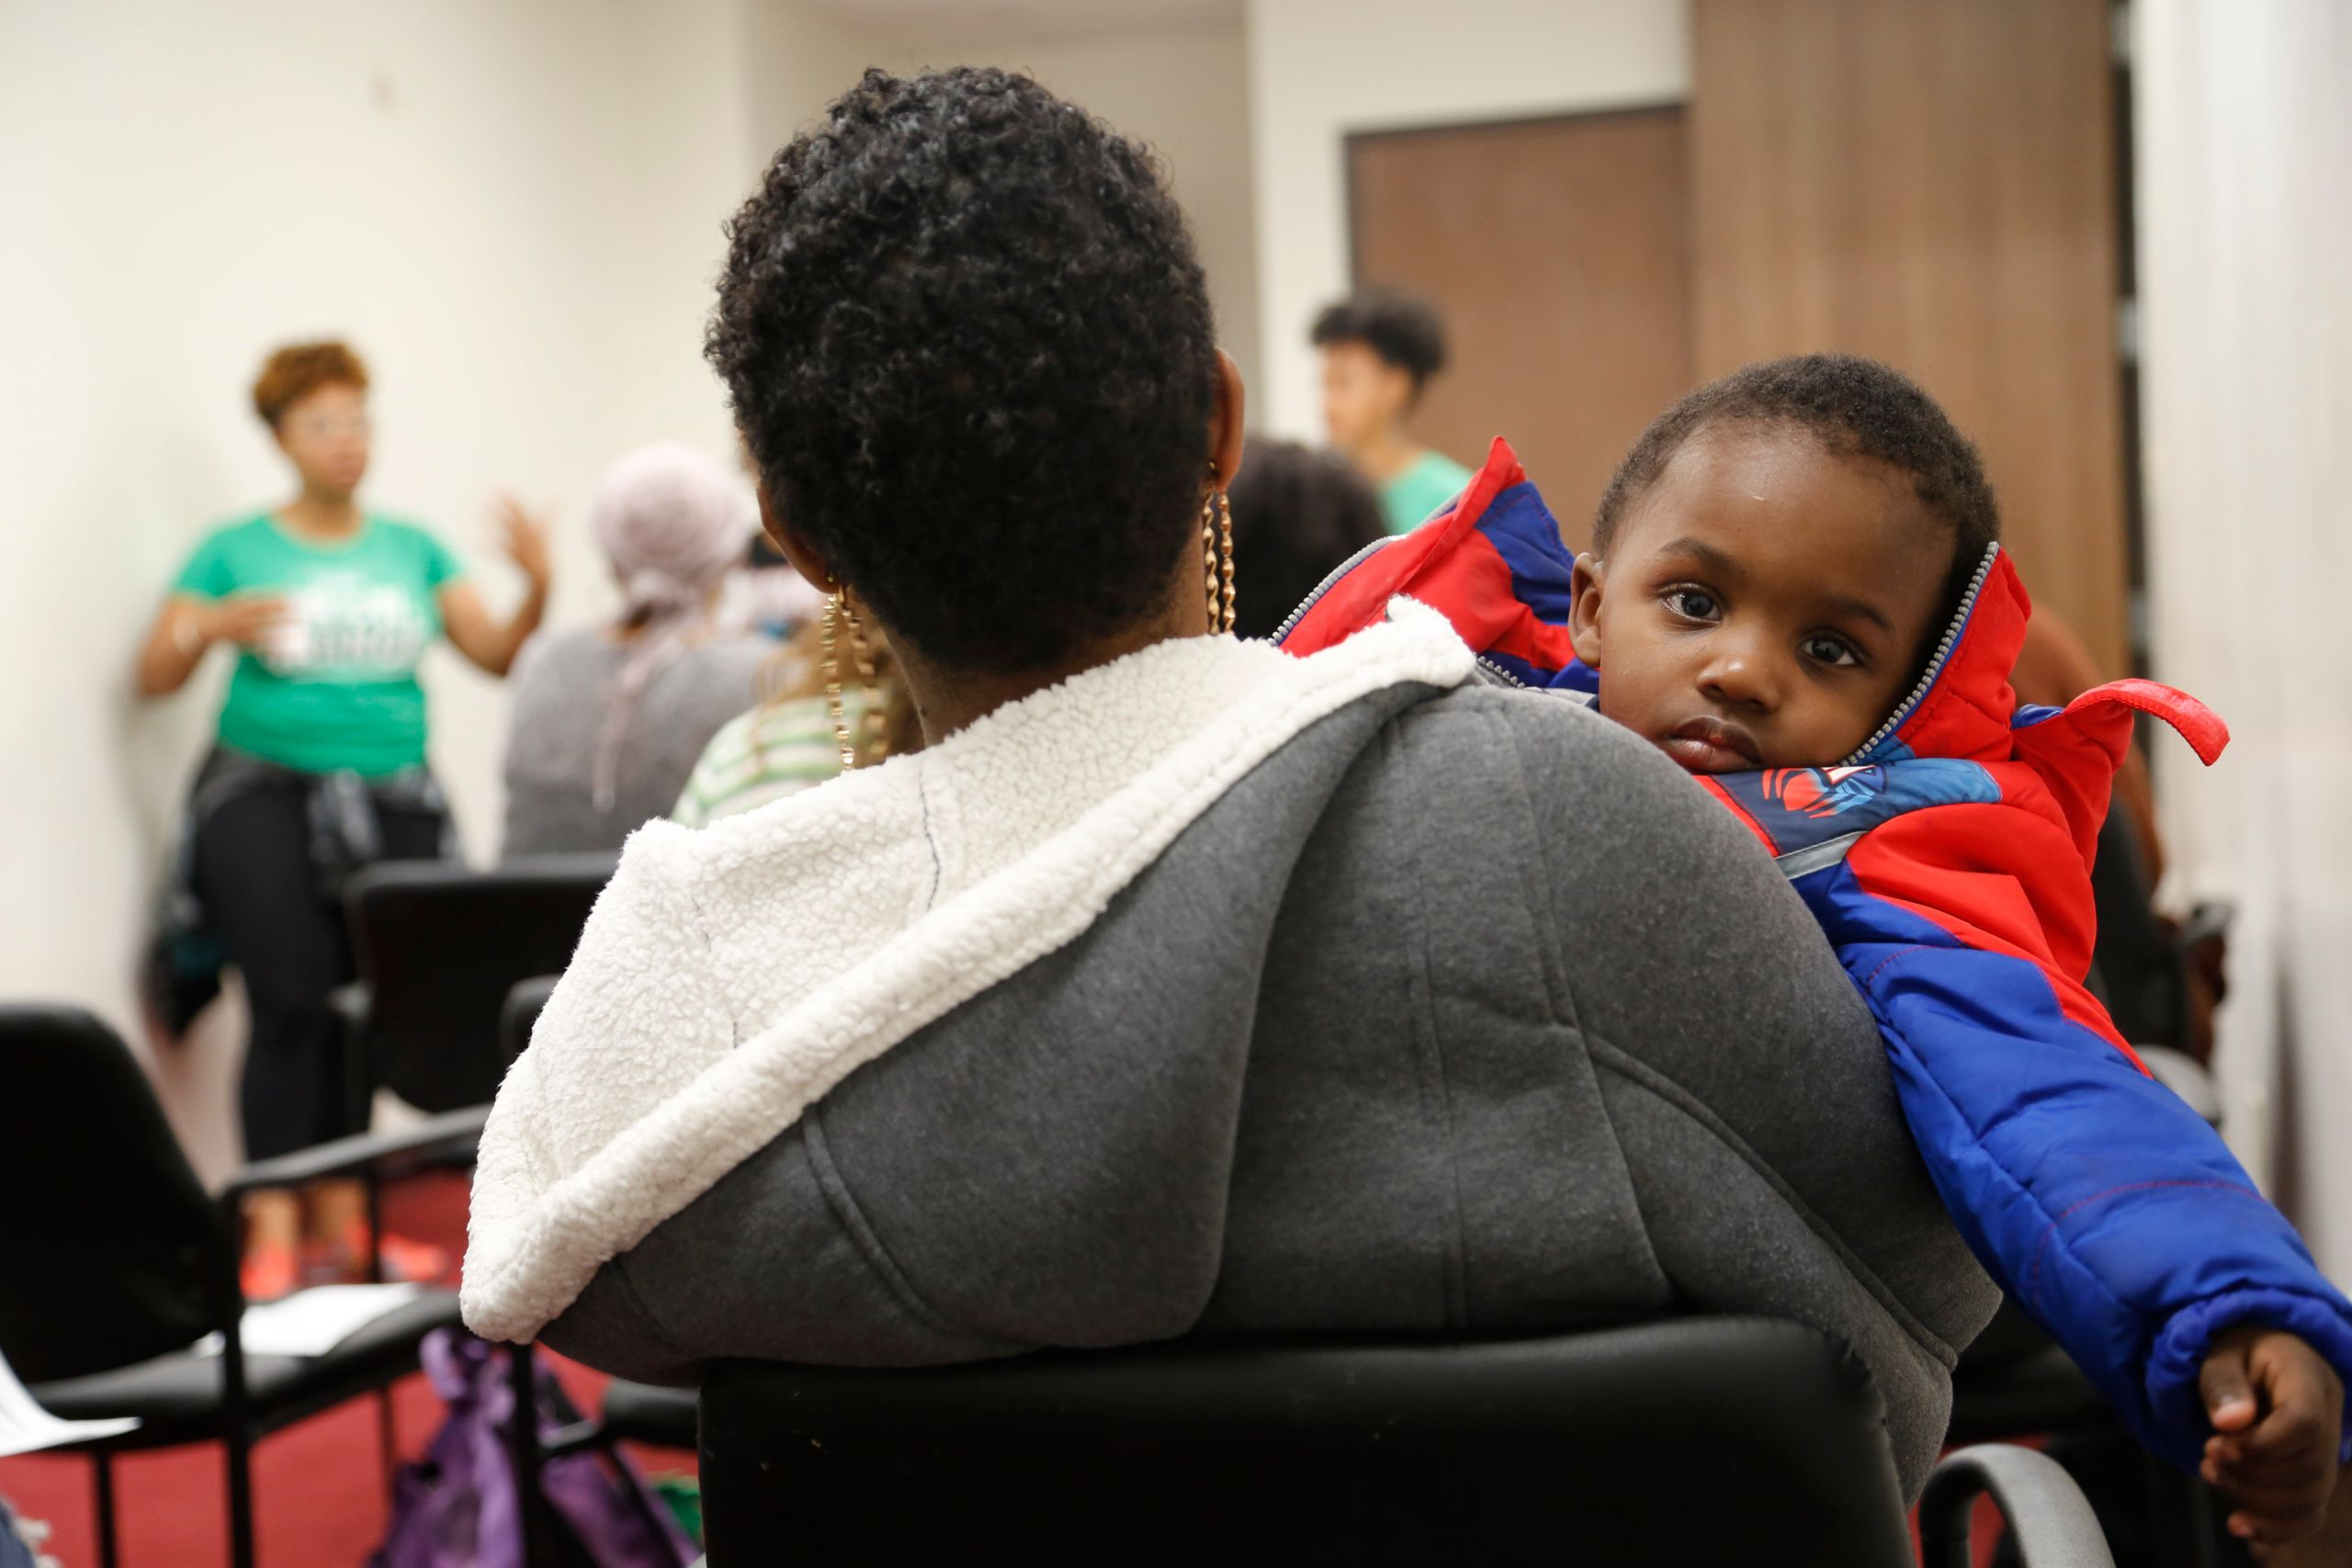 Markiana Richards attends an infant health class at Great Beginnings for Black Babies with her son, Priceton,